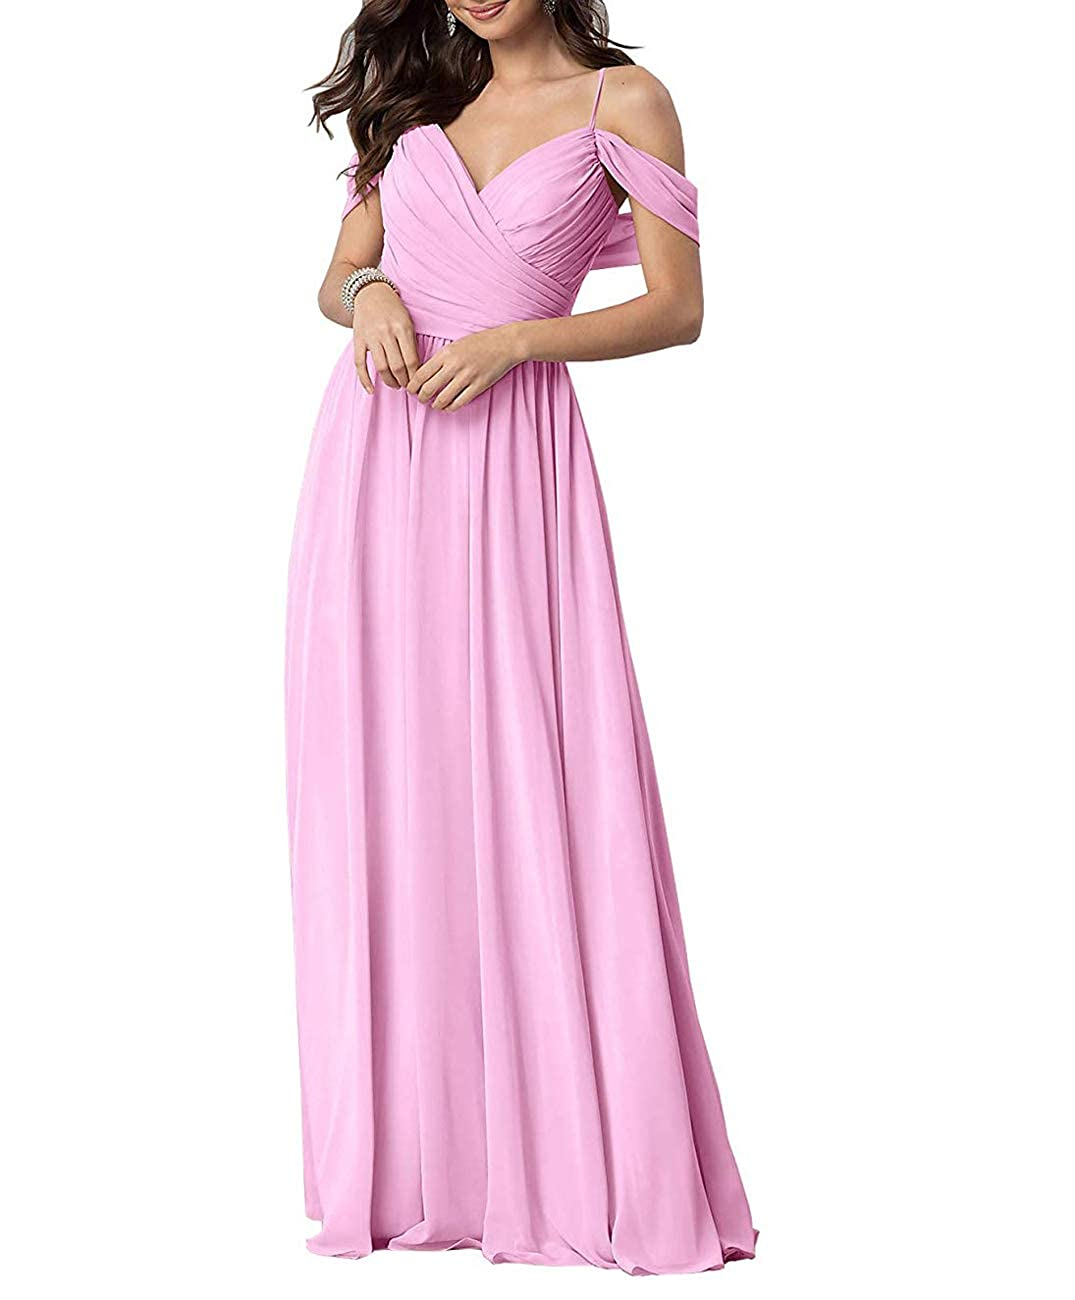 Pink Long Prom Gown and Evening Dresses for Women OffTheShoulder Bridesmaid Dresses